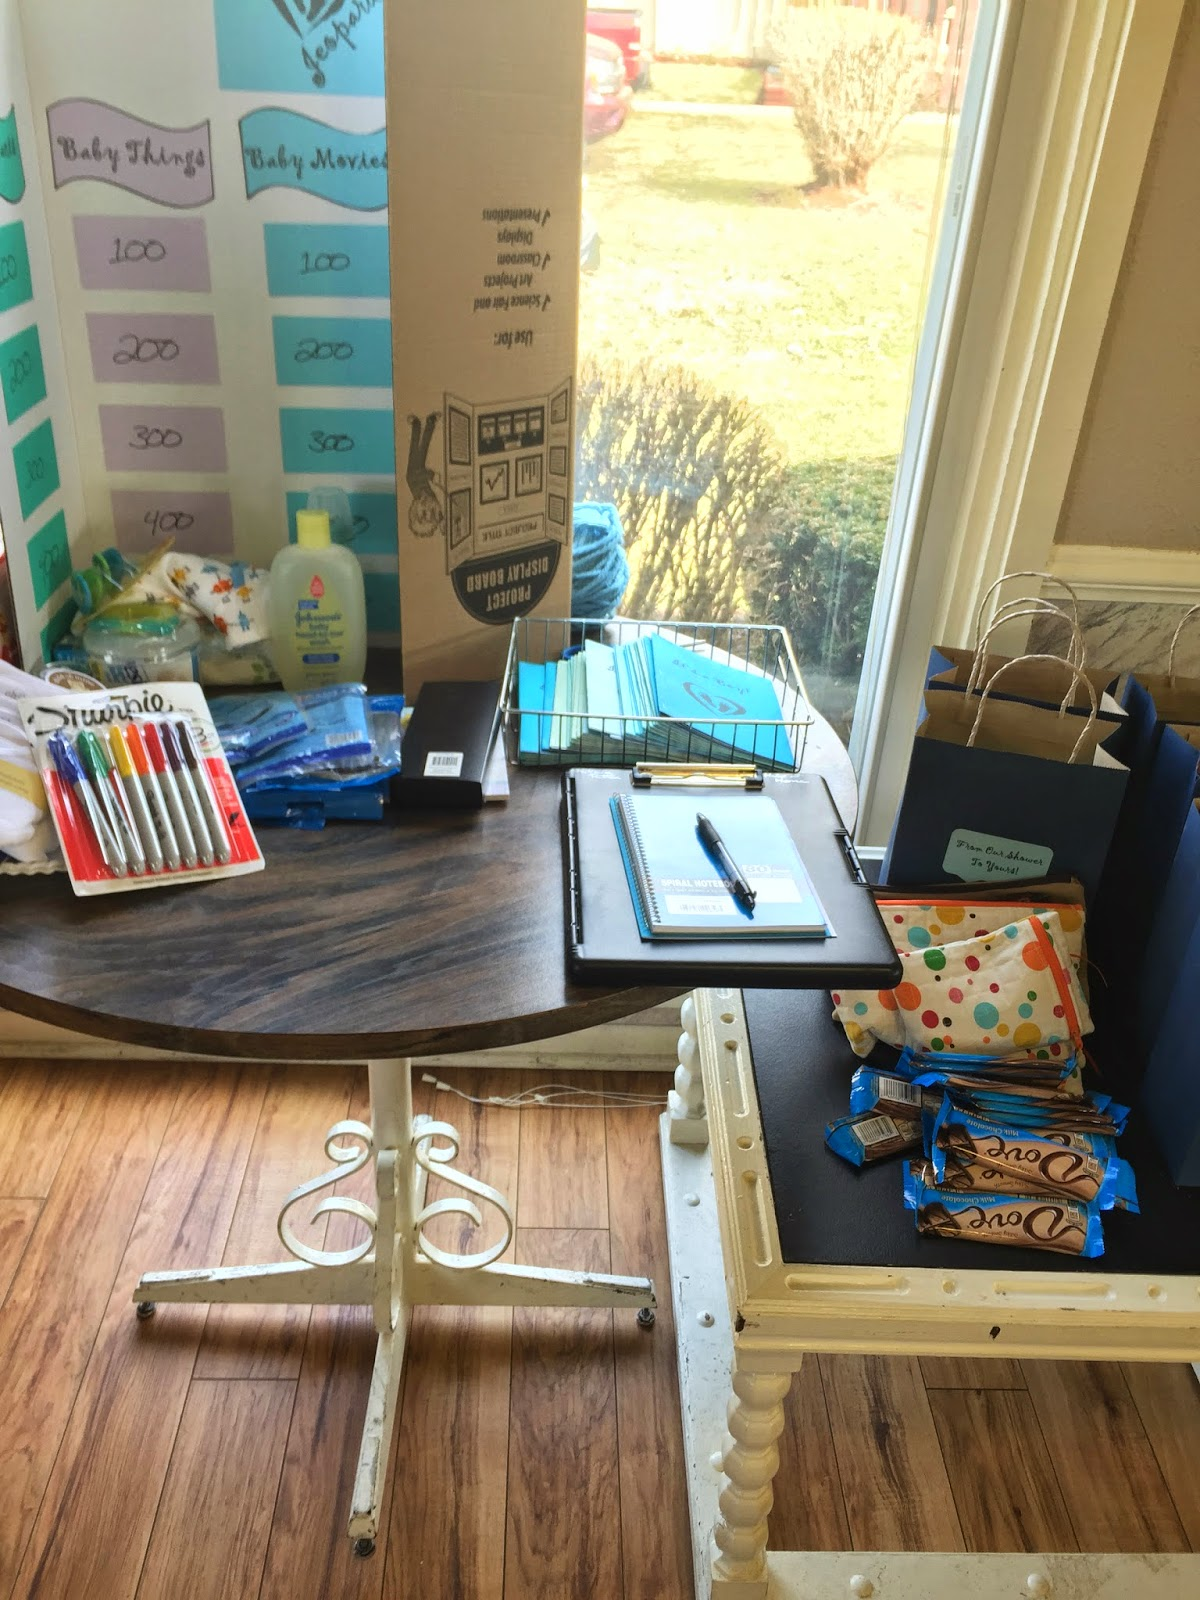 simple-games-for-a-babyshower